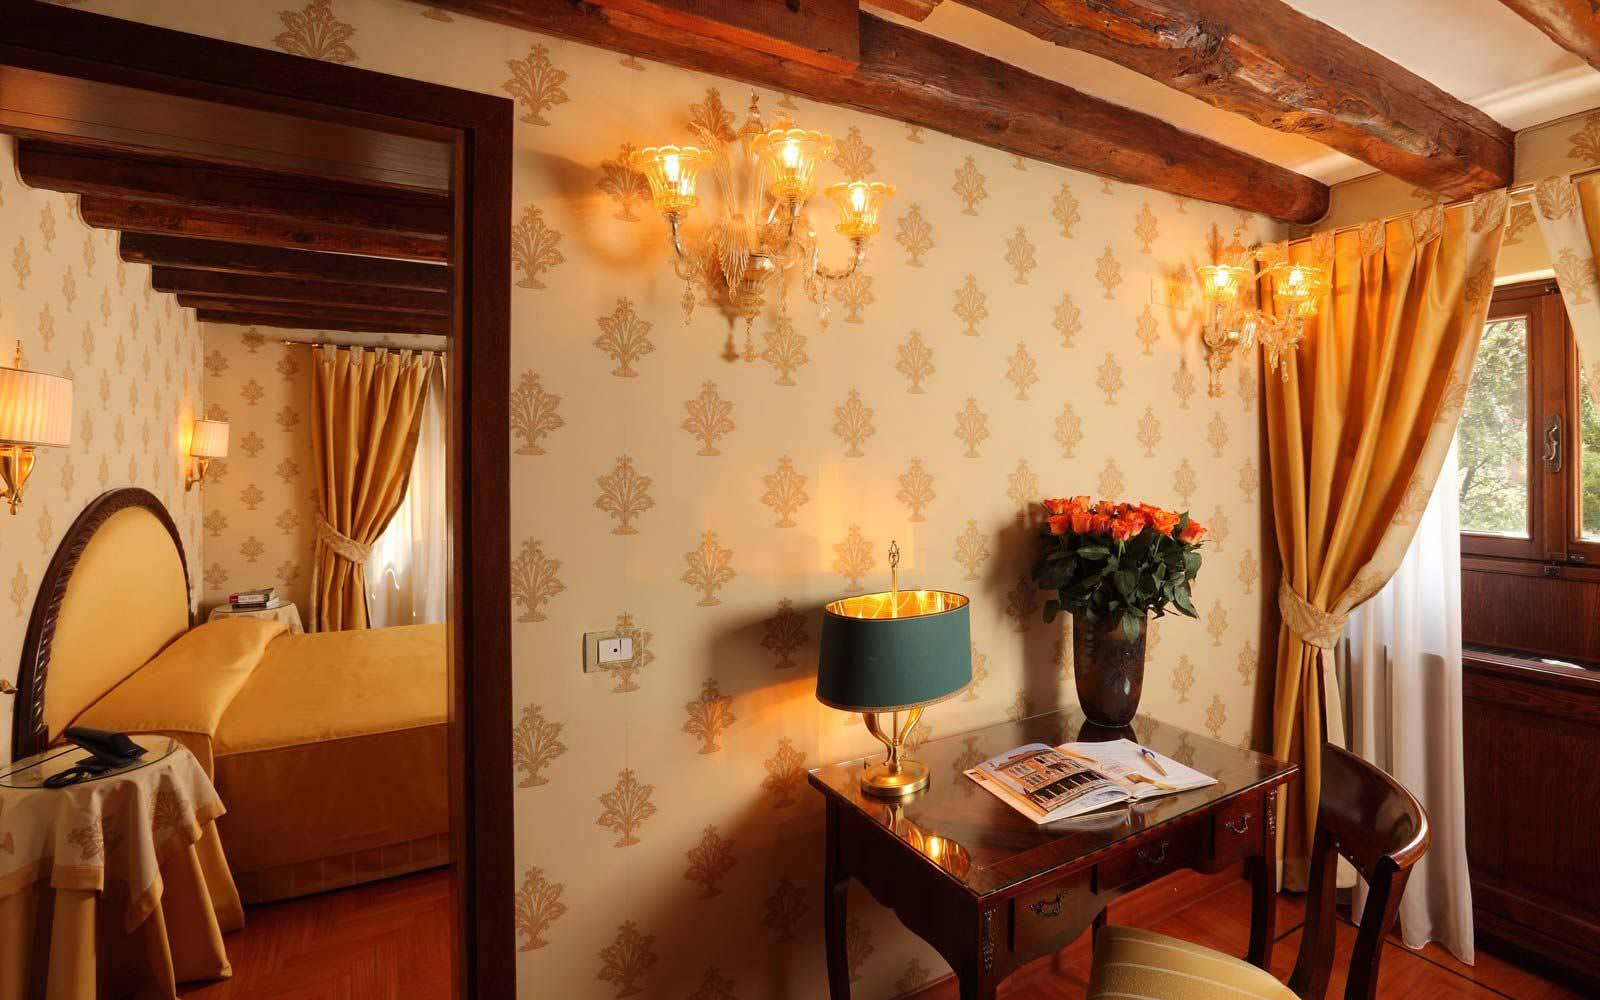 Suite at Palazzo Stern Hotel